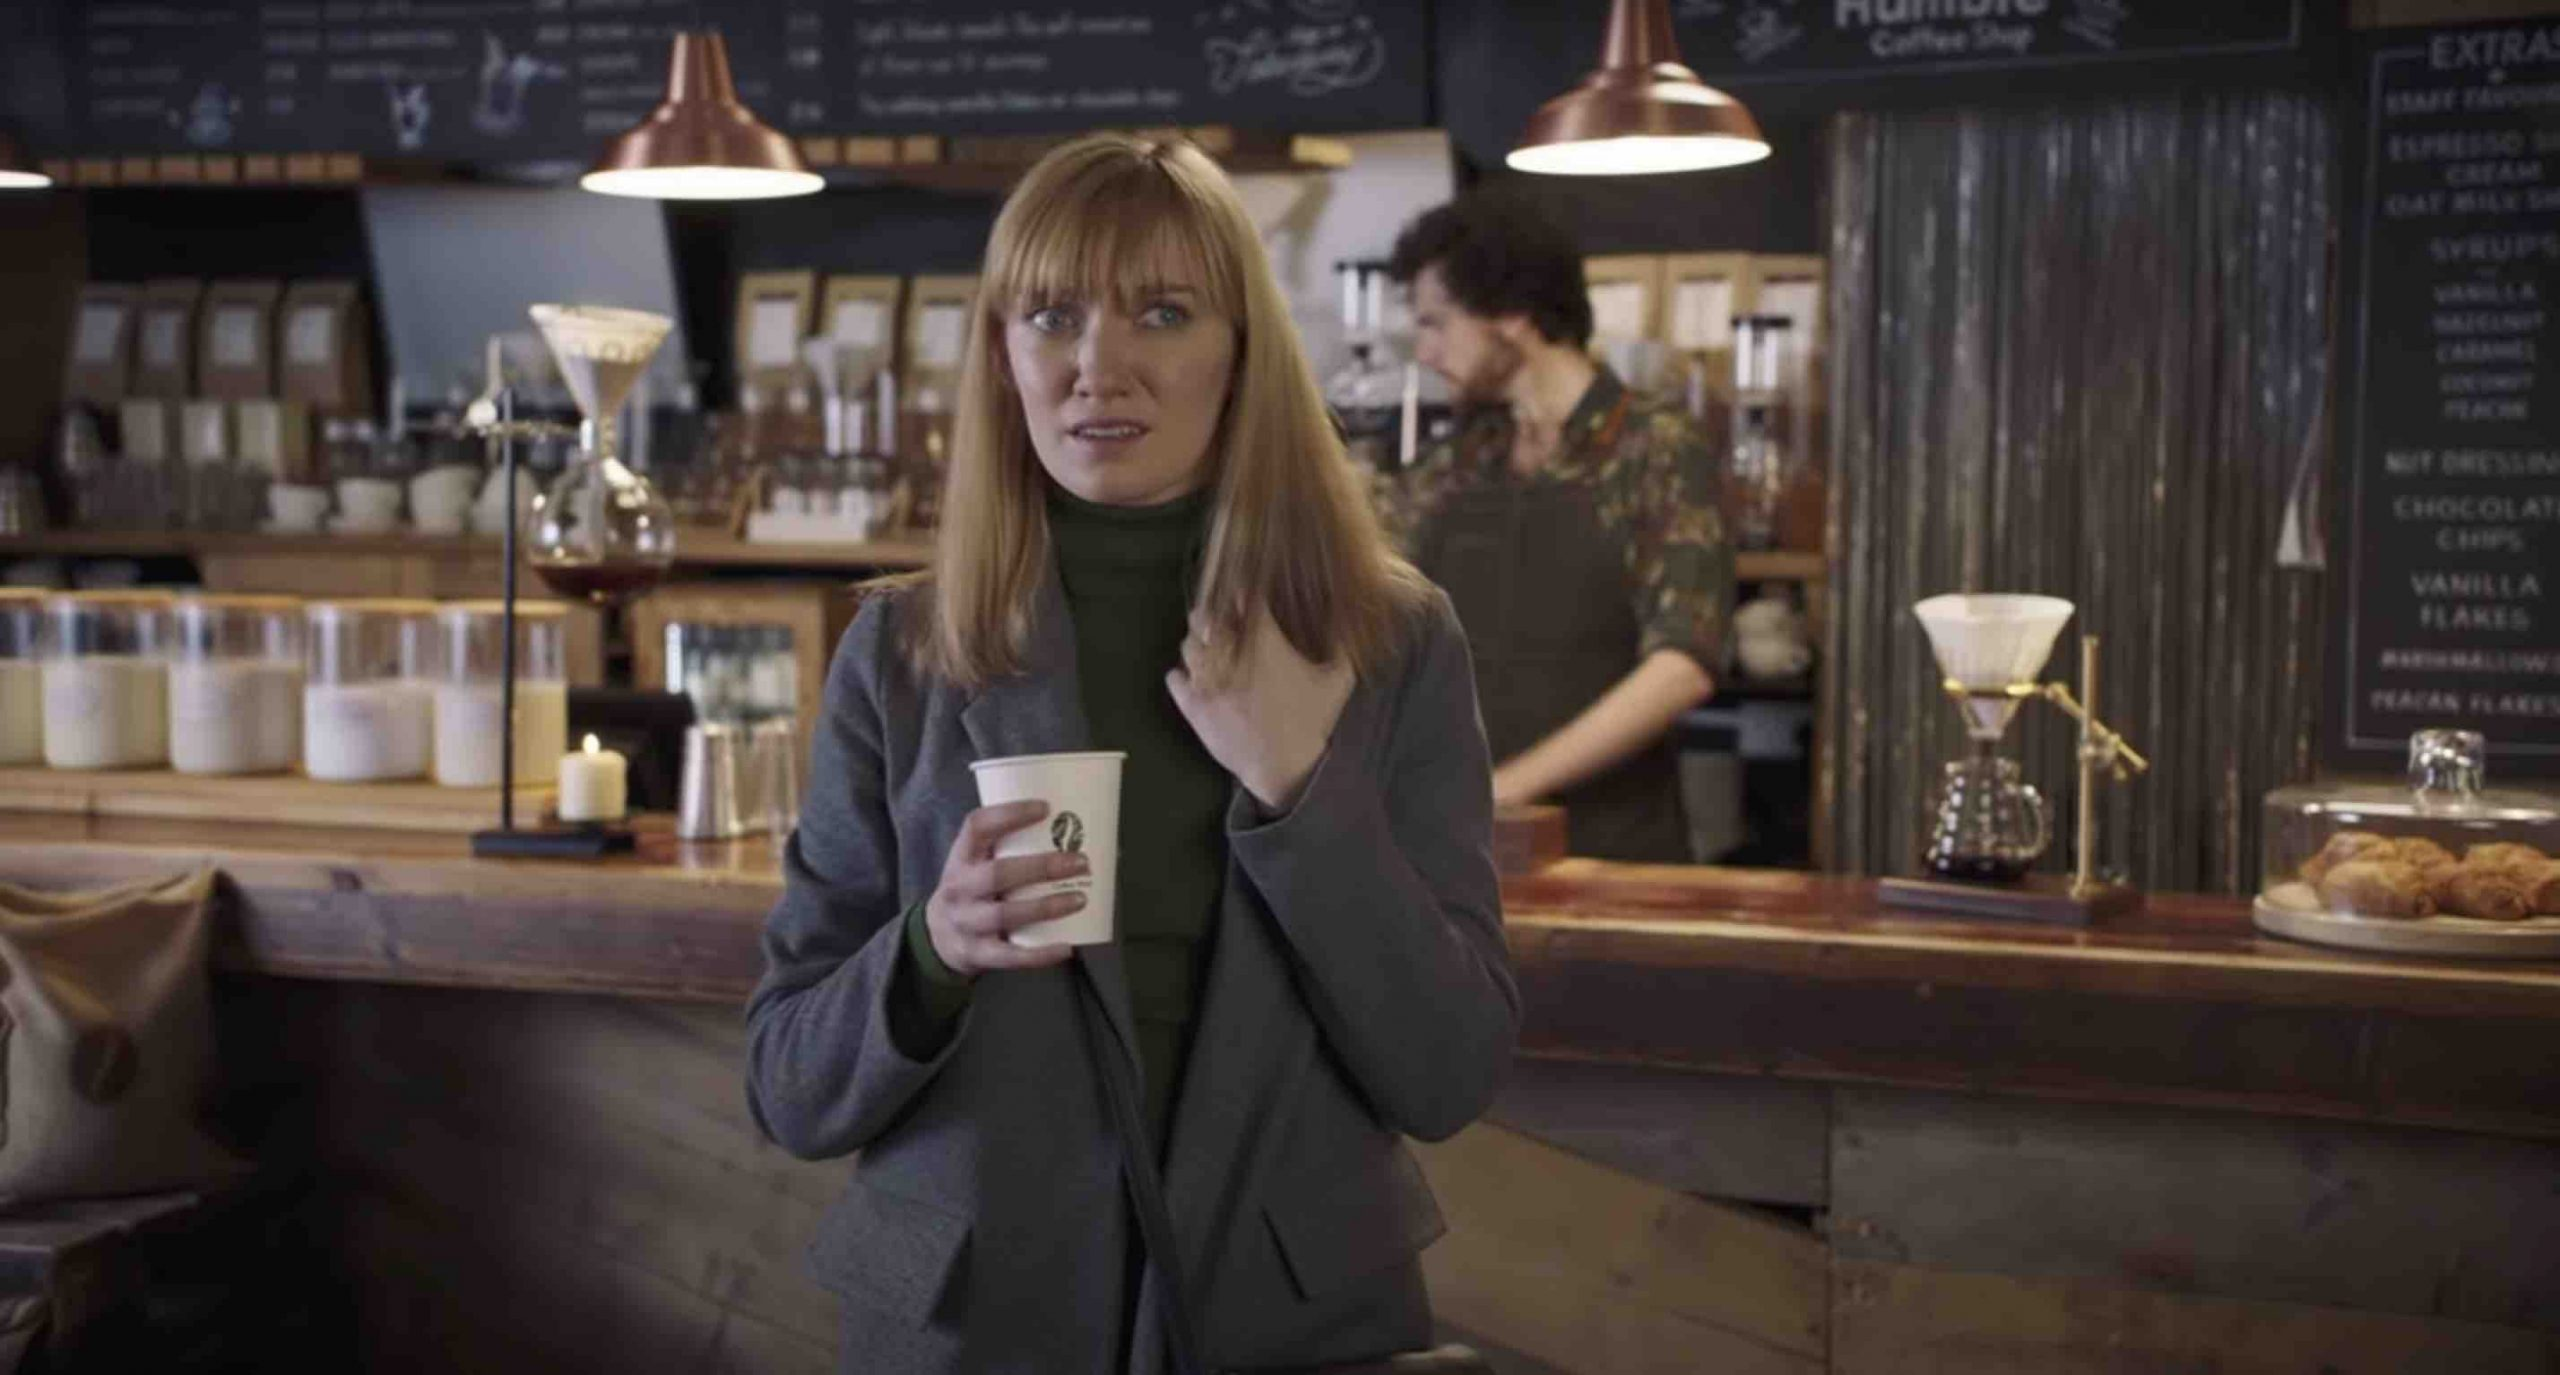 Shocked coffee customer in McDonalds funny advert